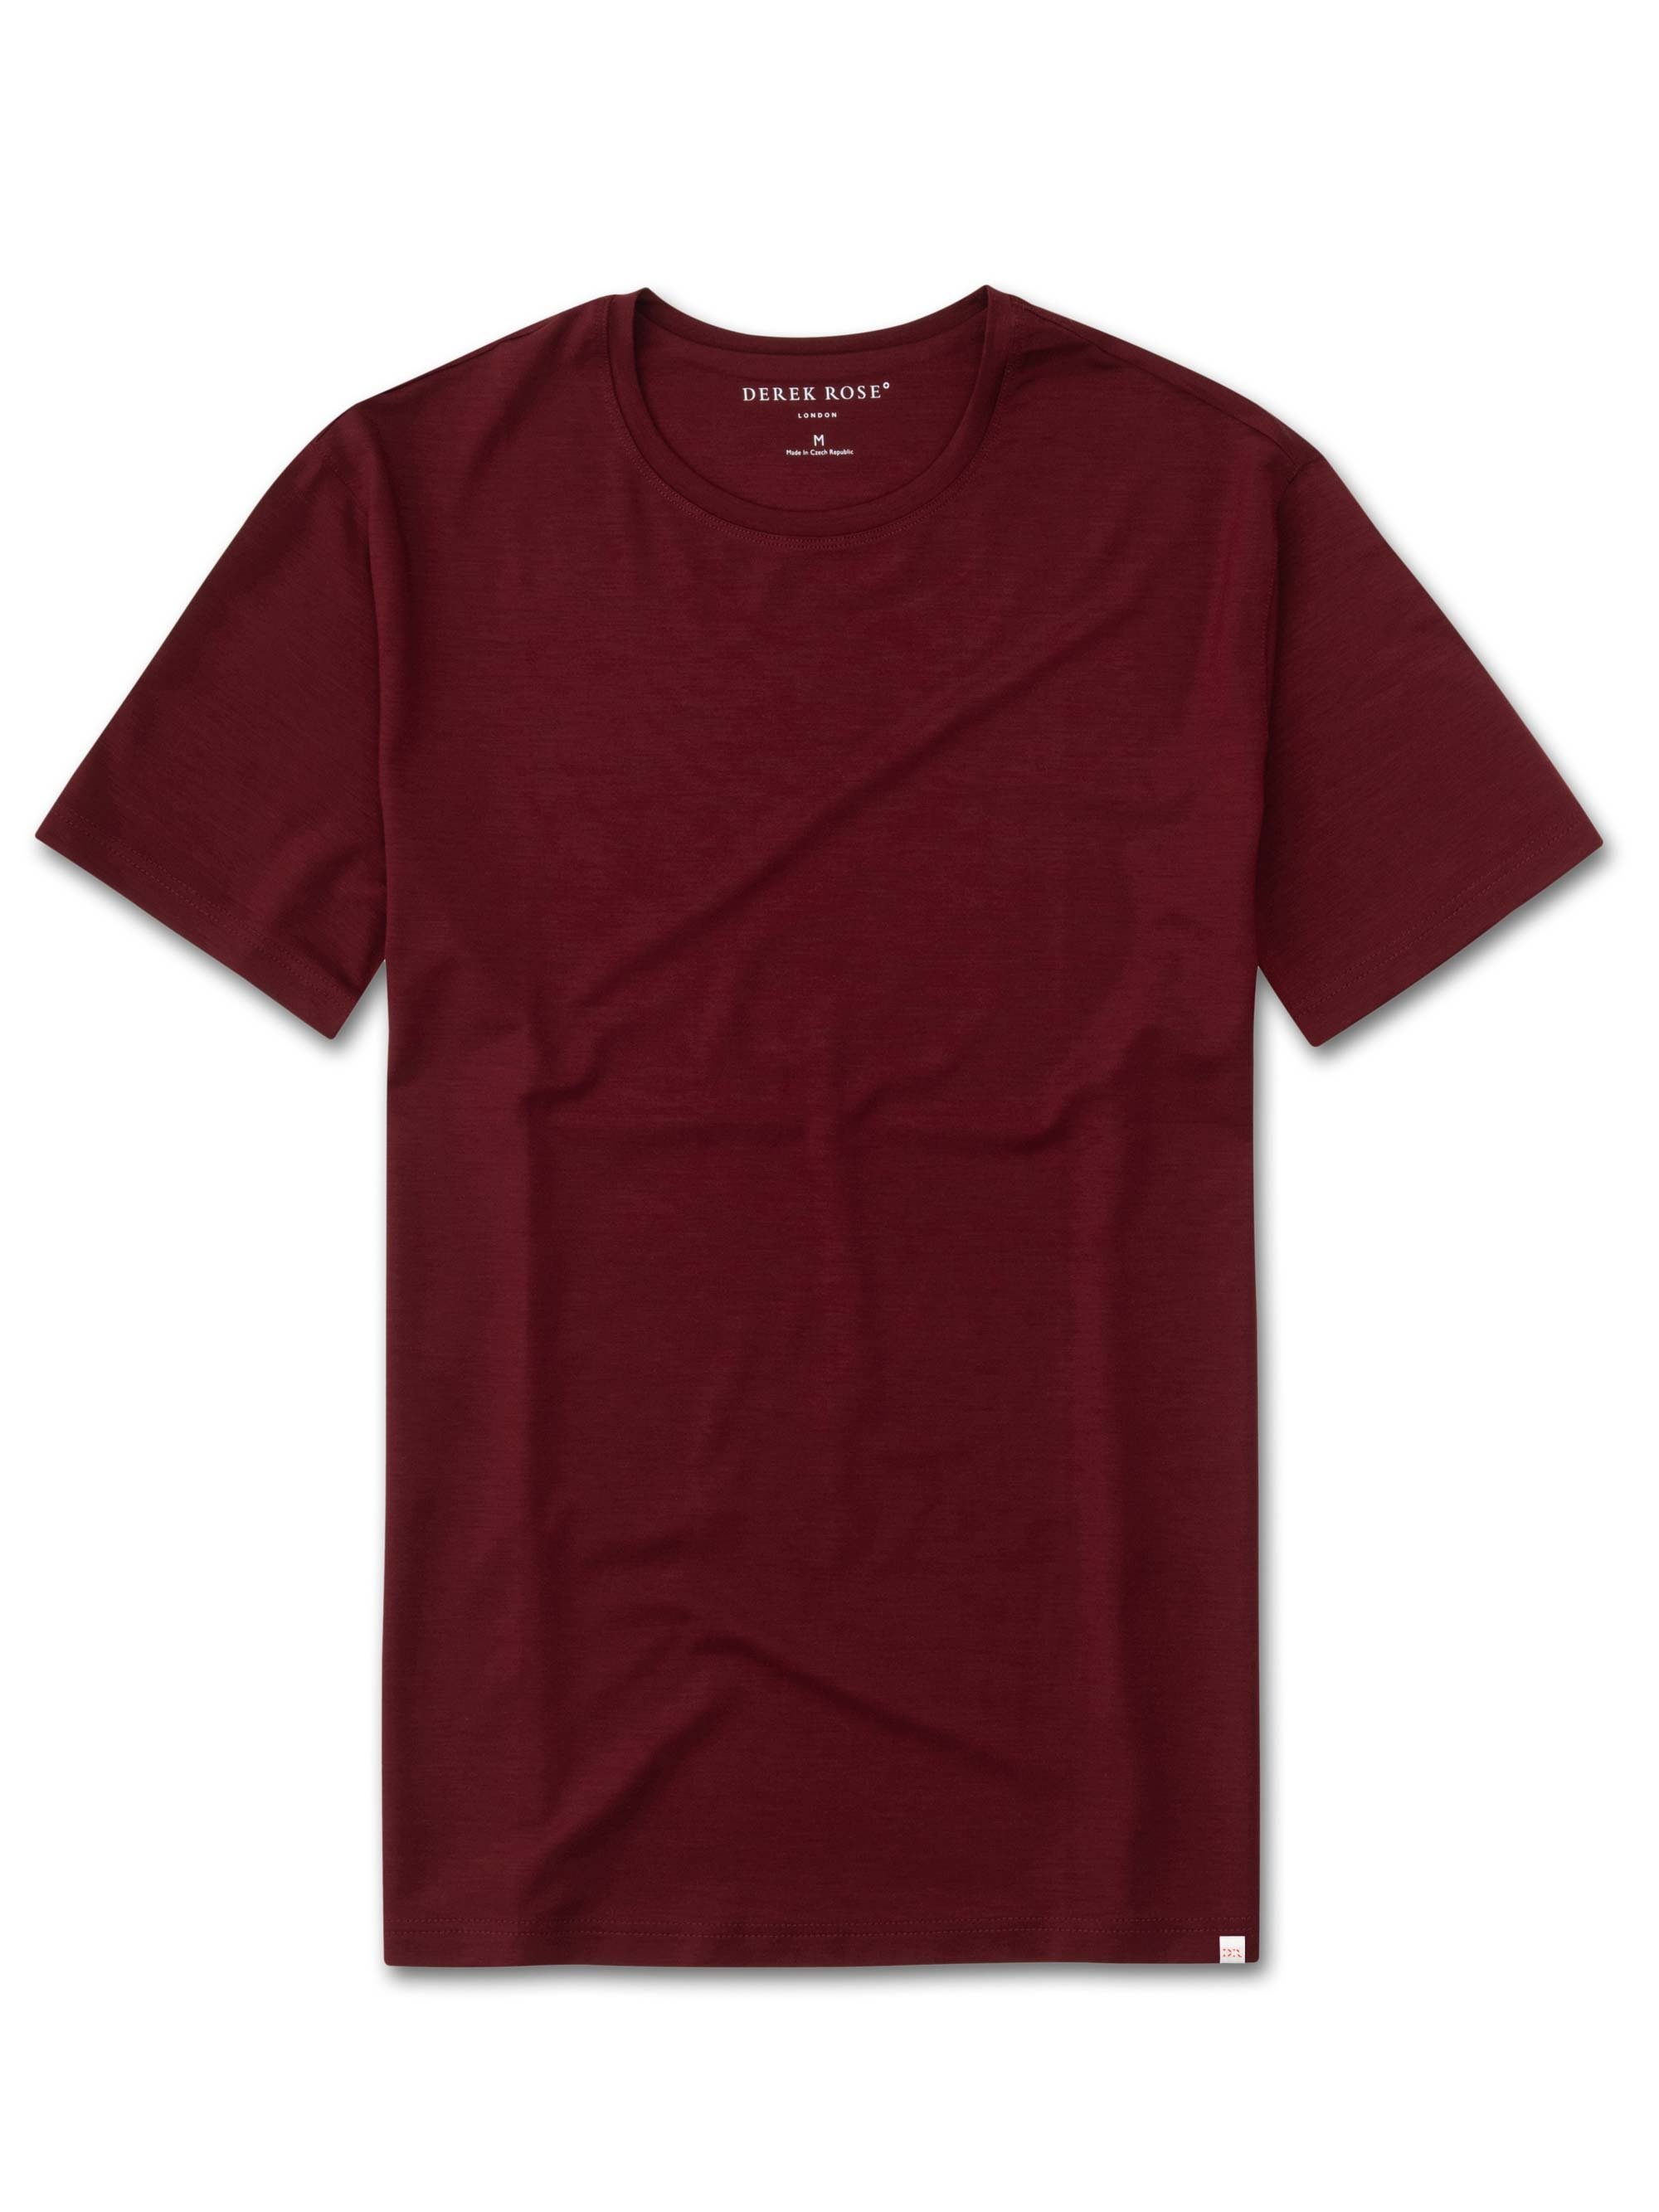 Men's Short Sleeve T-Shirt Basel 7 Micro Modal Stretch Burgundy